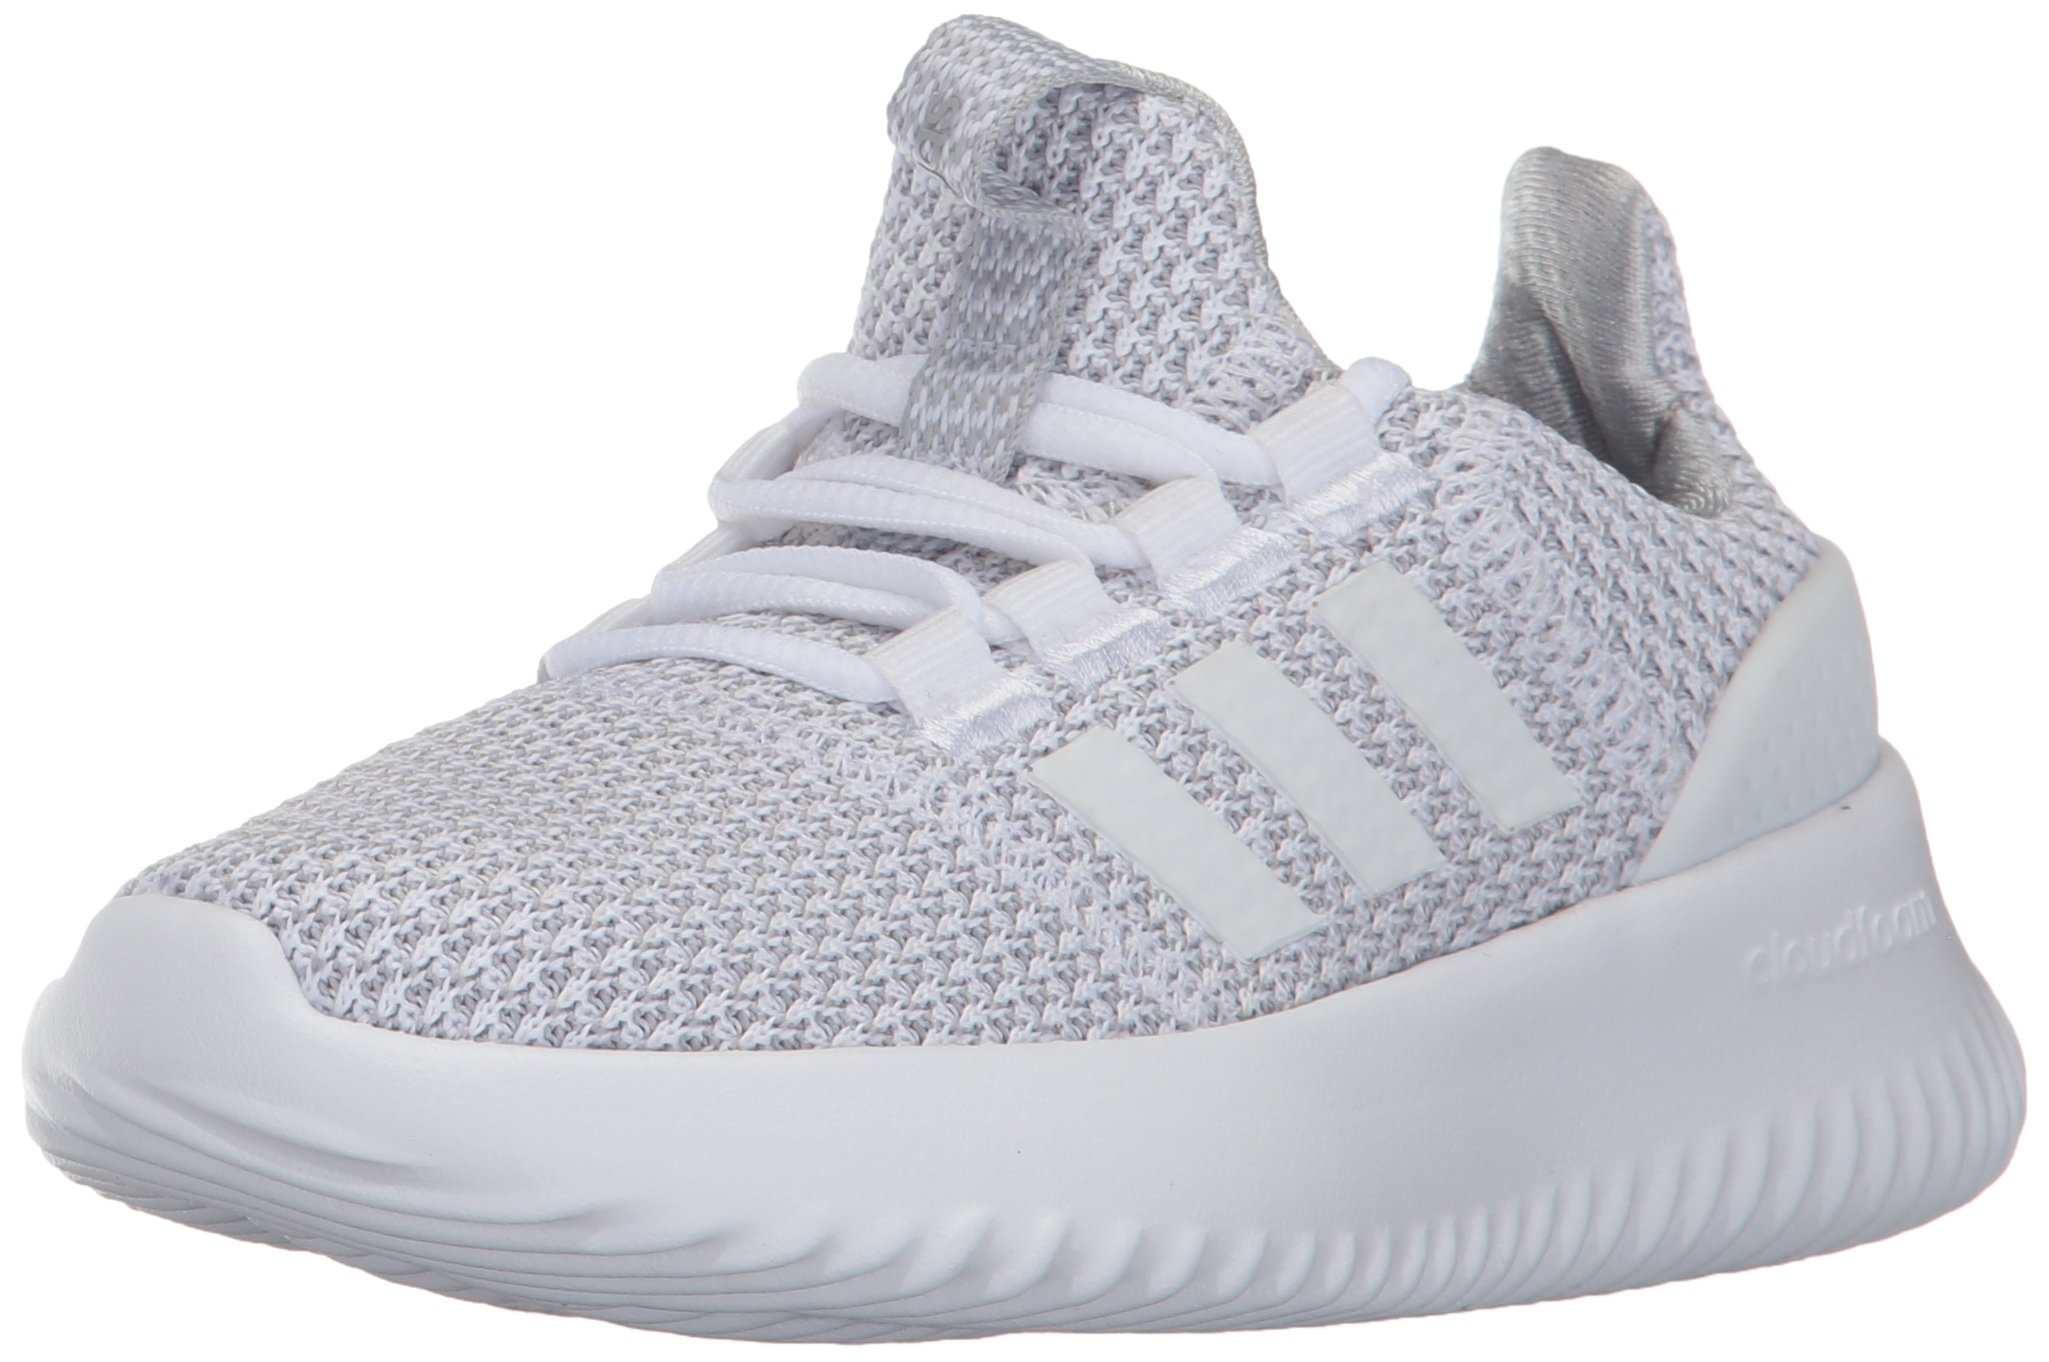 07f66ac98e2 Galleon - Adidas Kids' Cloudfoam Ultimate Sneaker, White/White/Grey Two,  5.5 M US Little Kid